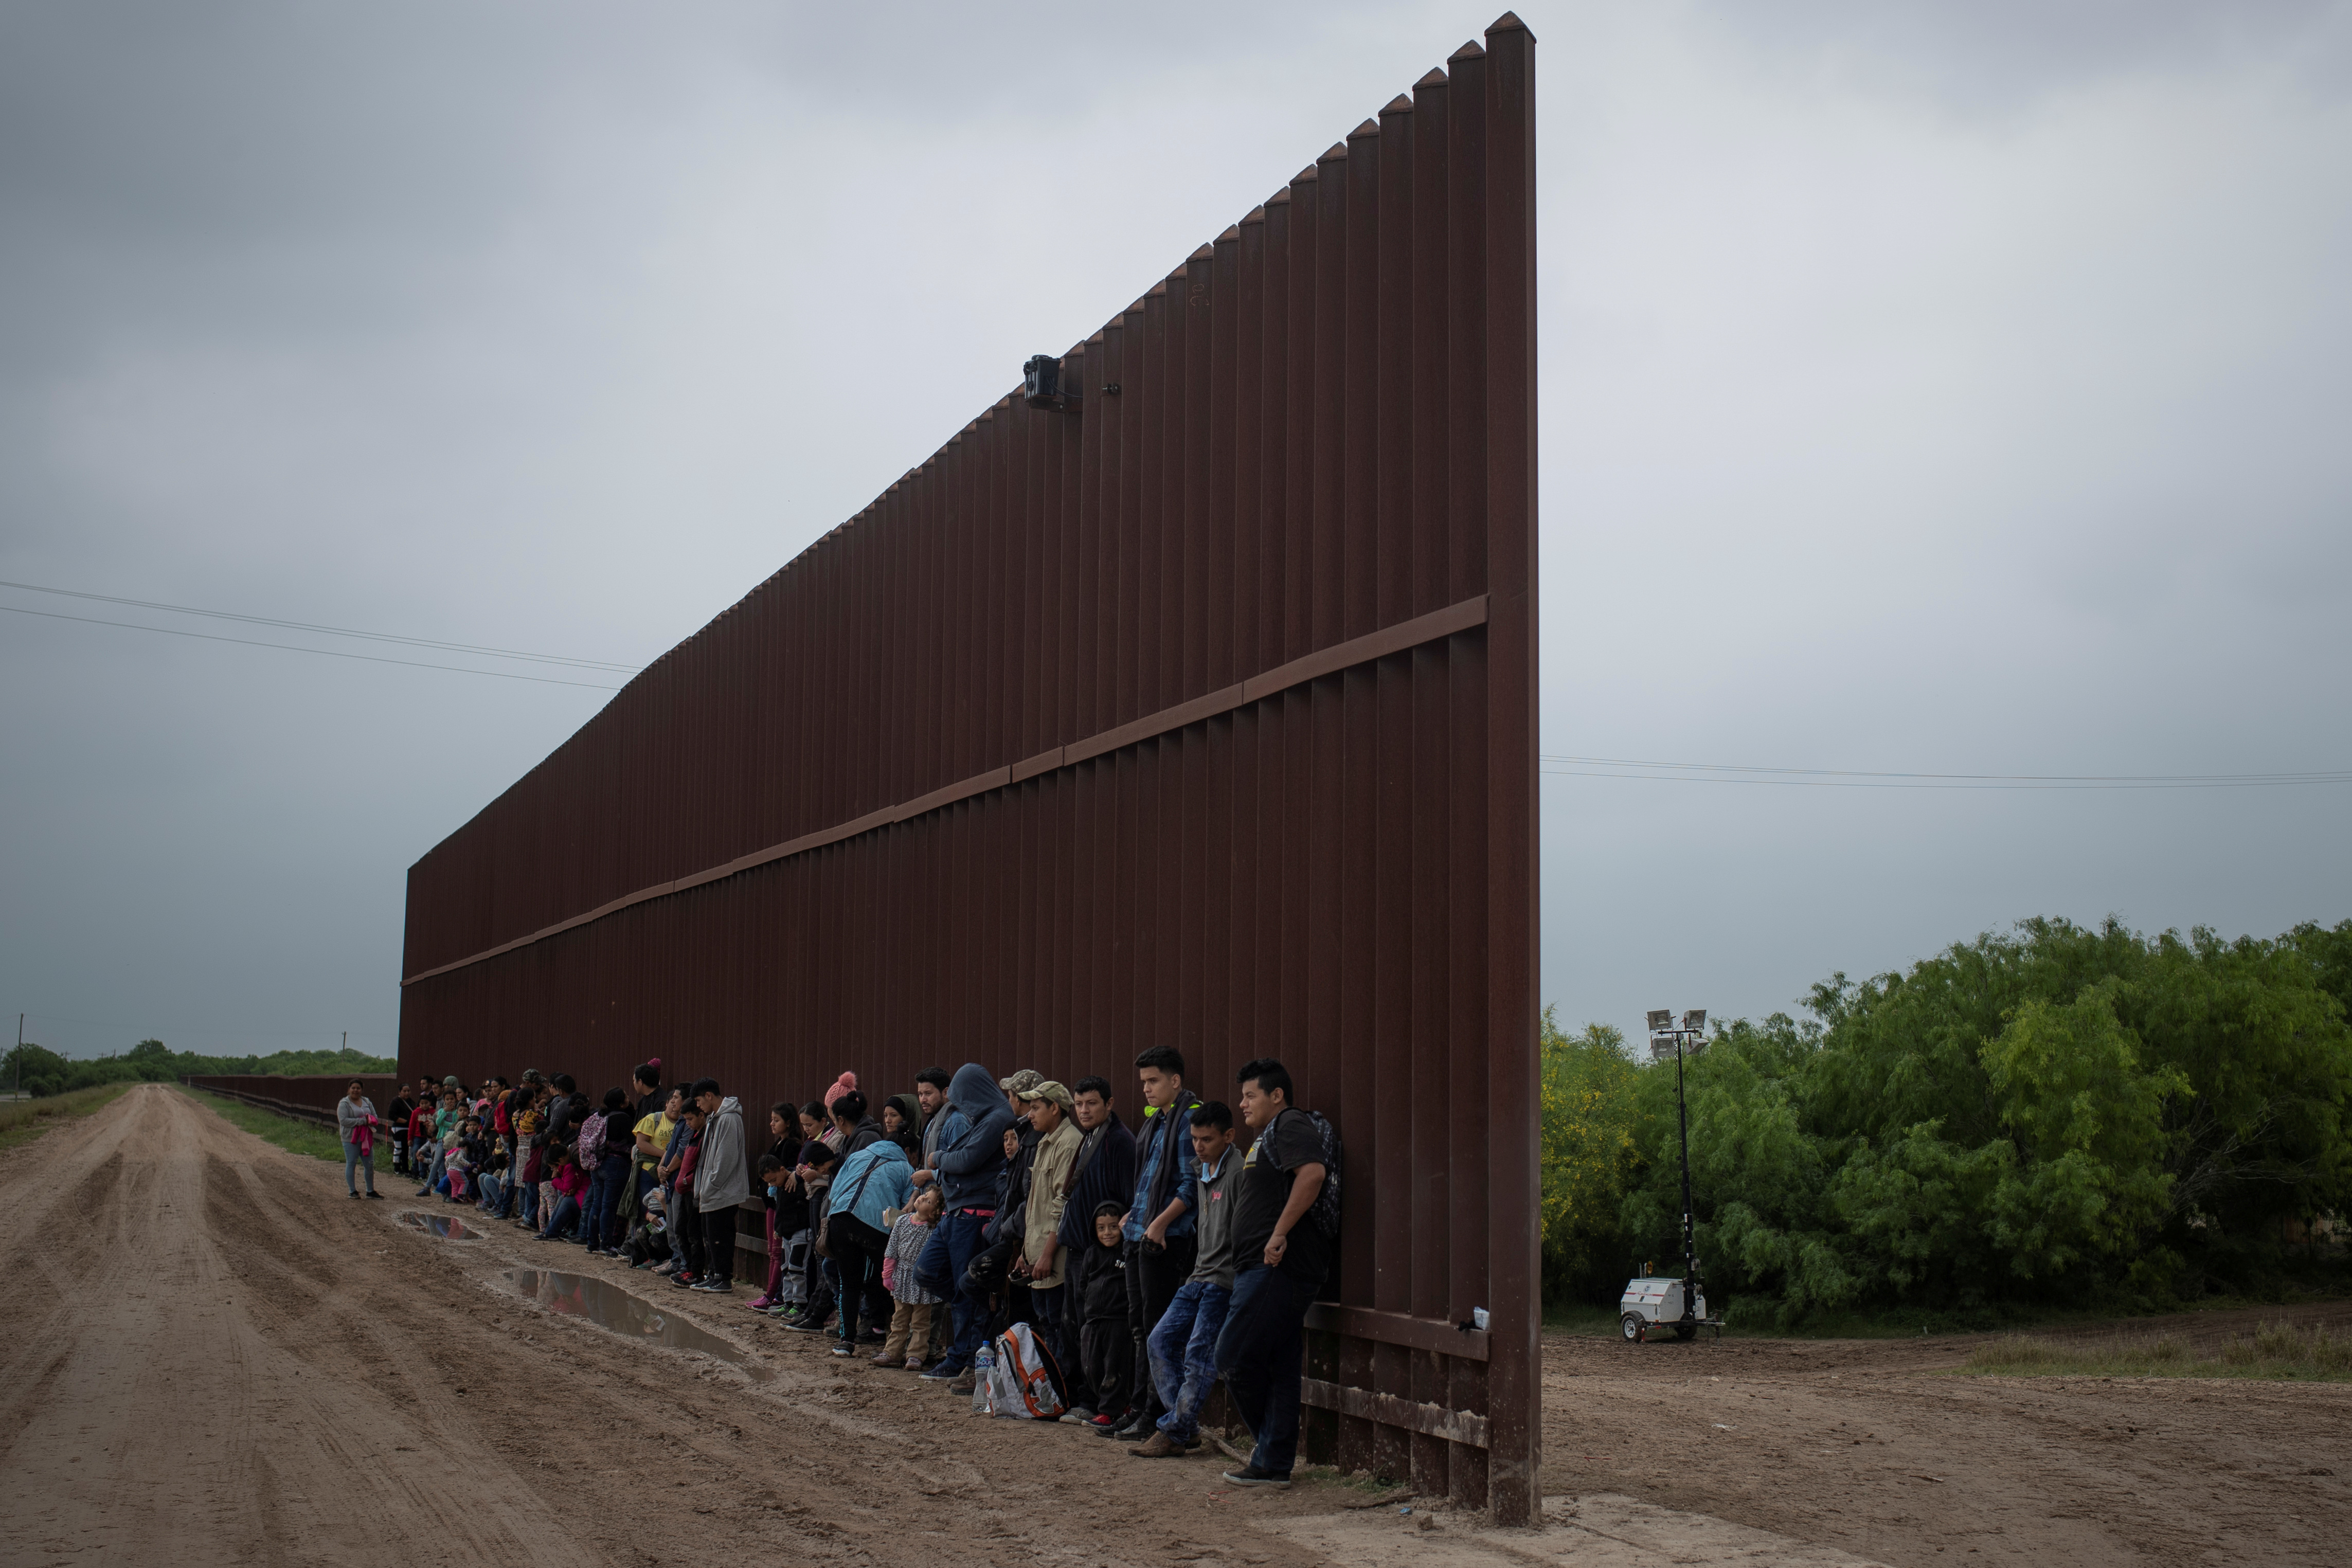 FILE PHOTO: Asylum-seeking migrants from Central America line-up along the border wall as they wait to surrender to the U.S. border patrol, after they crossed the Rio Grande river into the United States from Mexico, in Penitas, Texas,